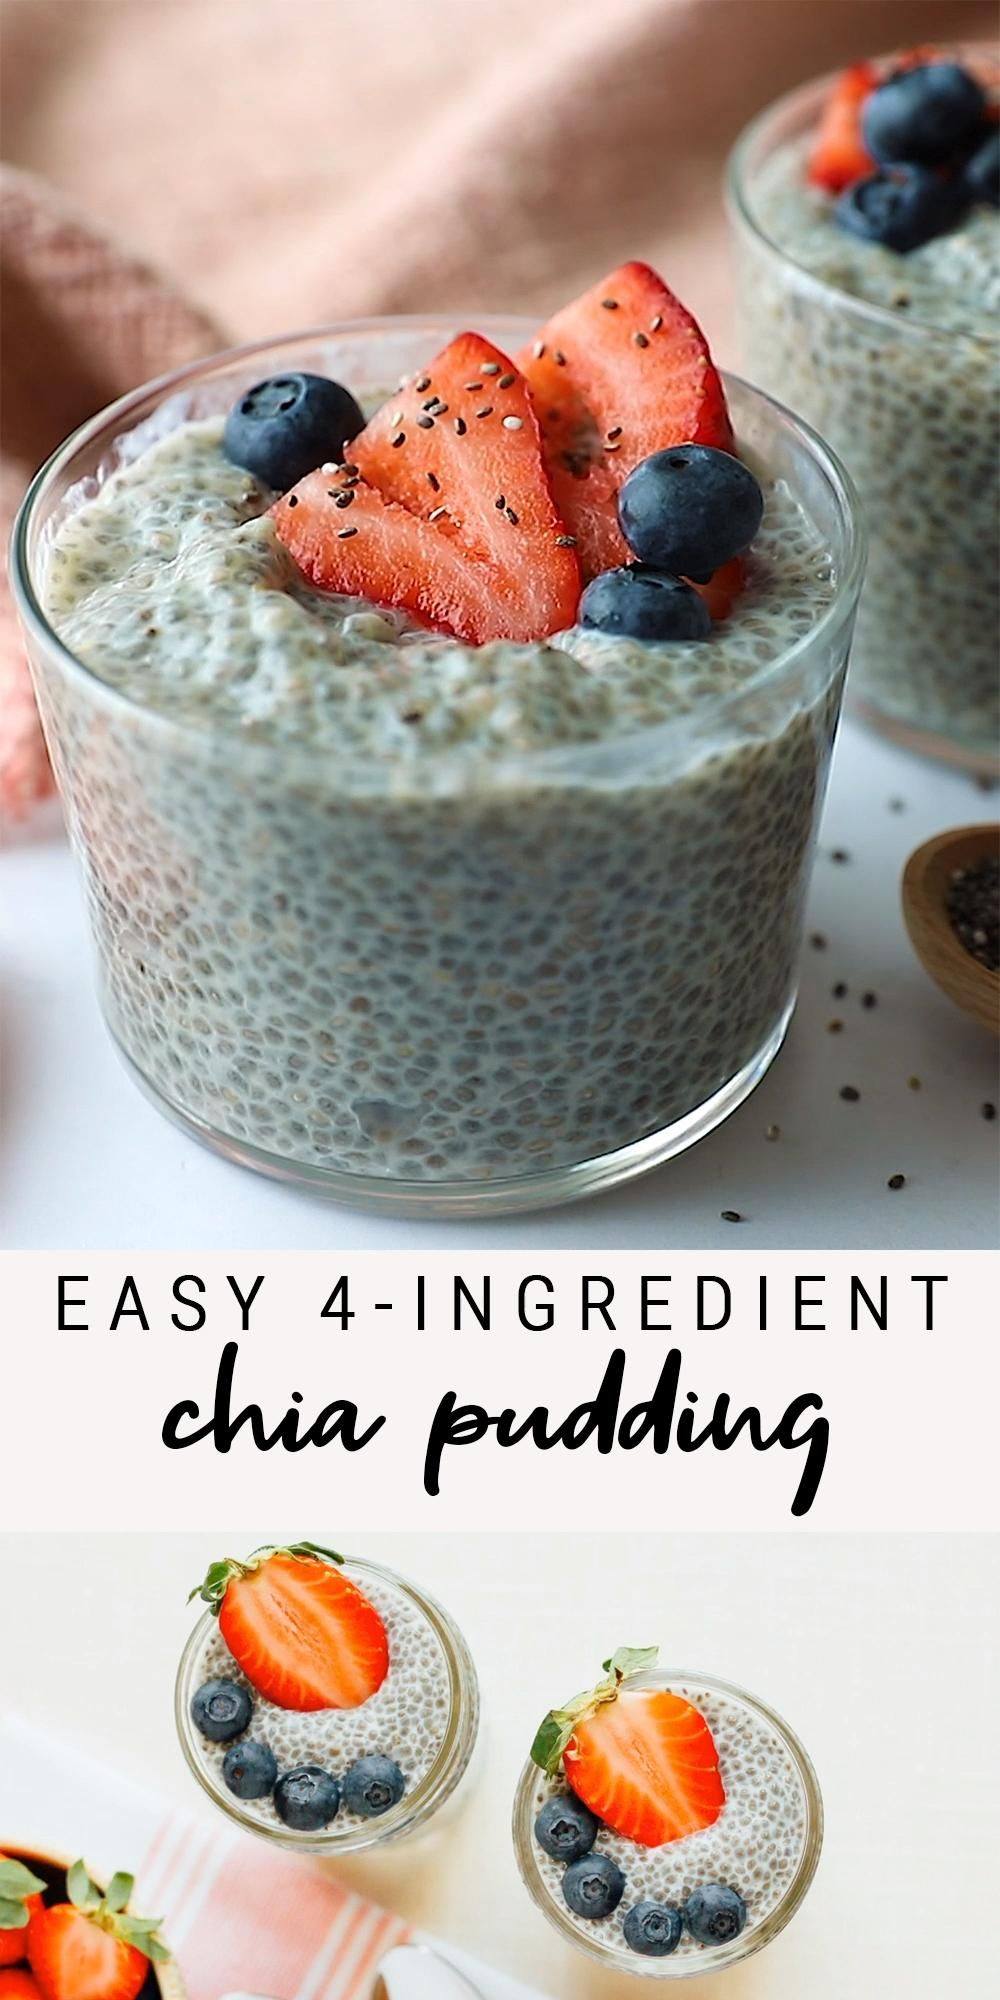 Easy 4-Ingredient Chia Pudding | Healthy Snack, Breakfast, Dessert | Vegan, Paleo, Keto, Gluten-Free